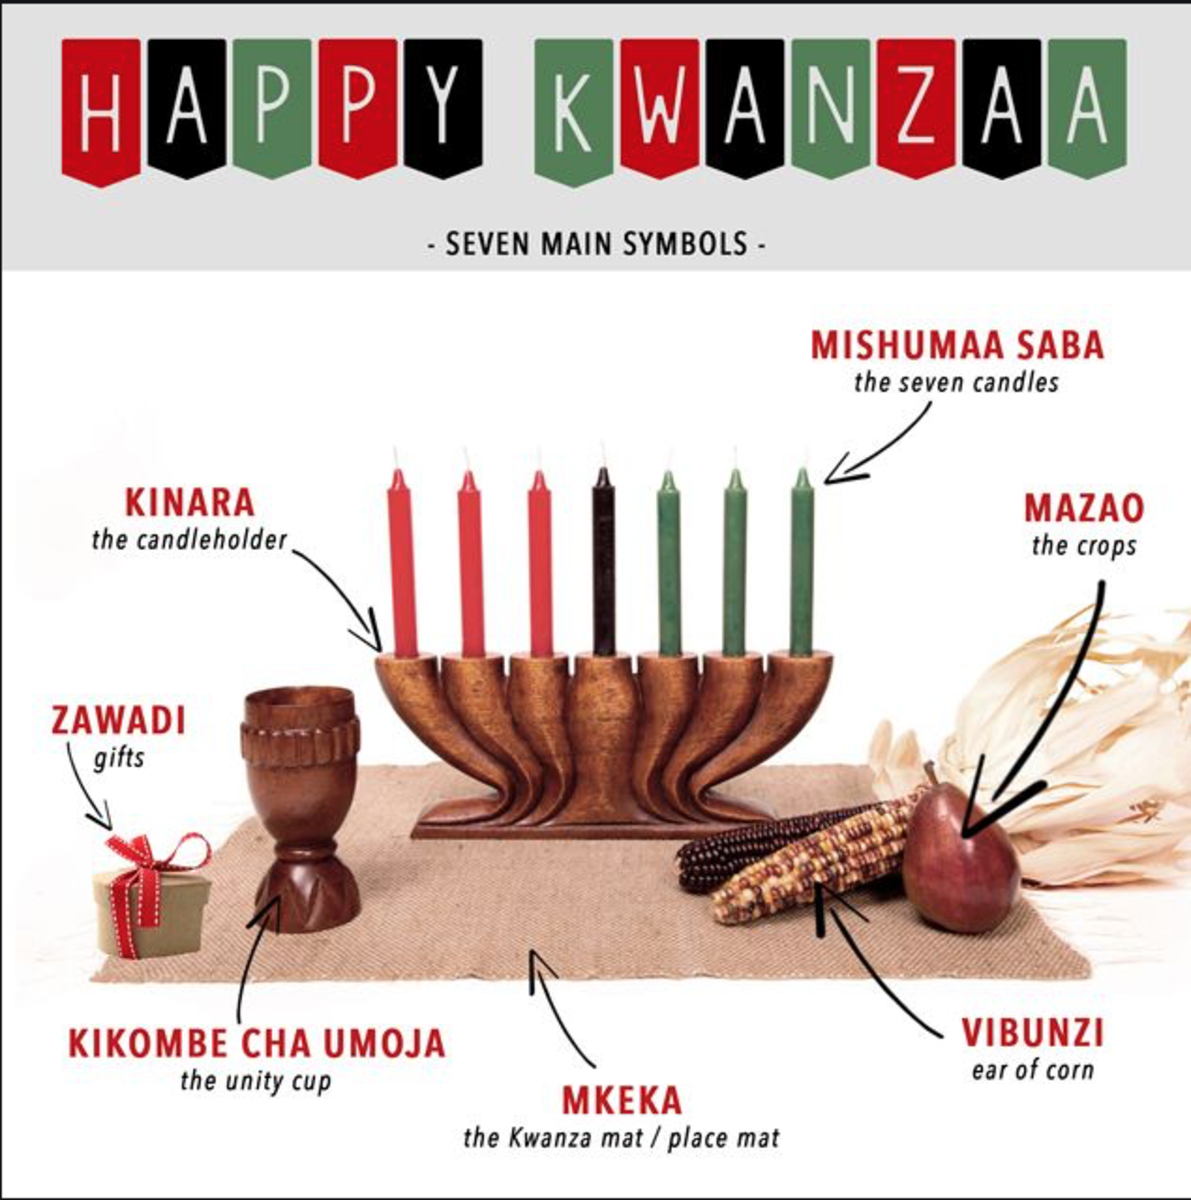 Kwanzaa has seven basic symbols, including the Kinara (Candle Holder).